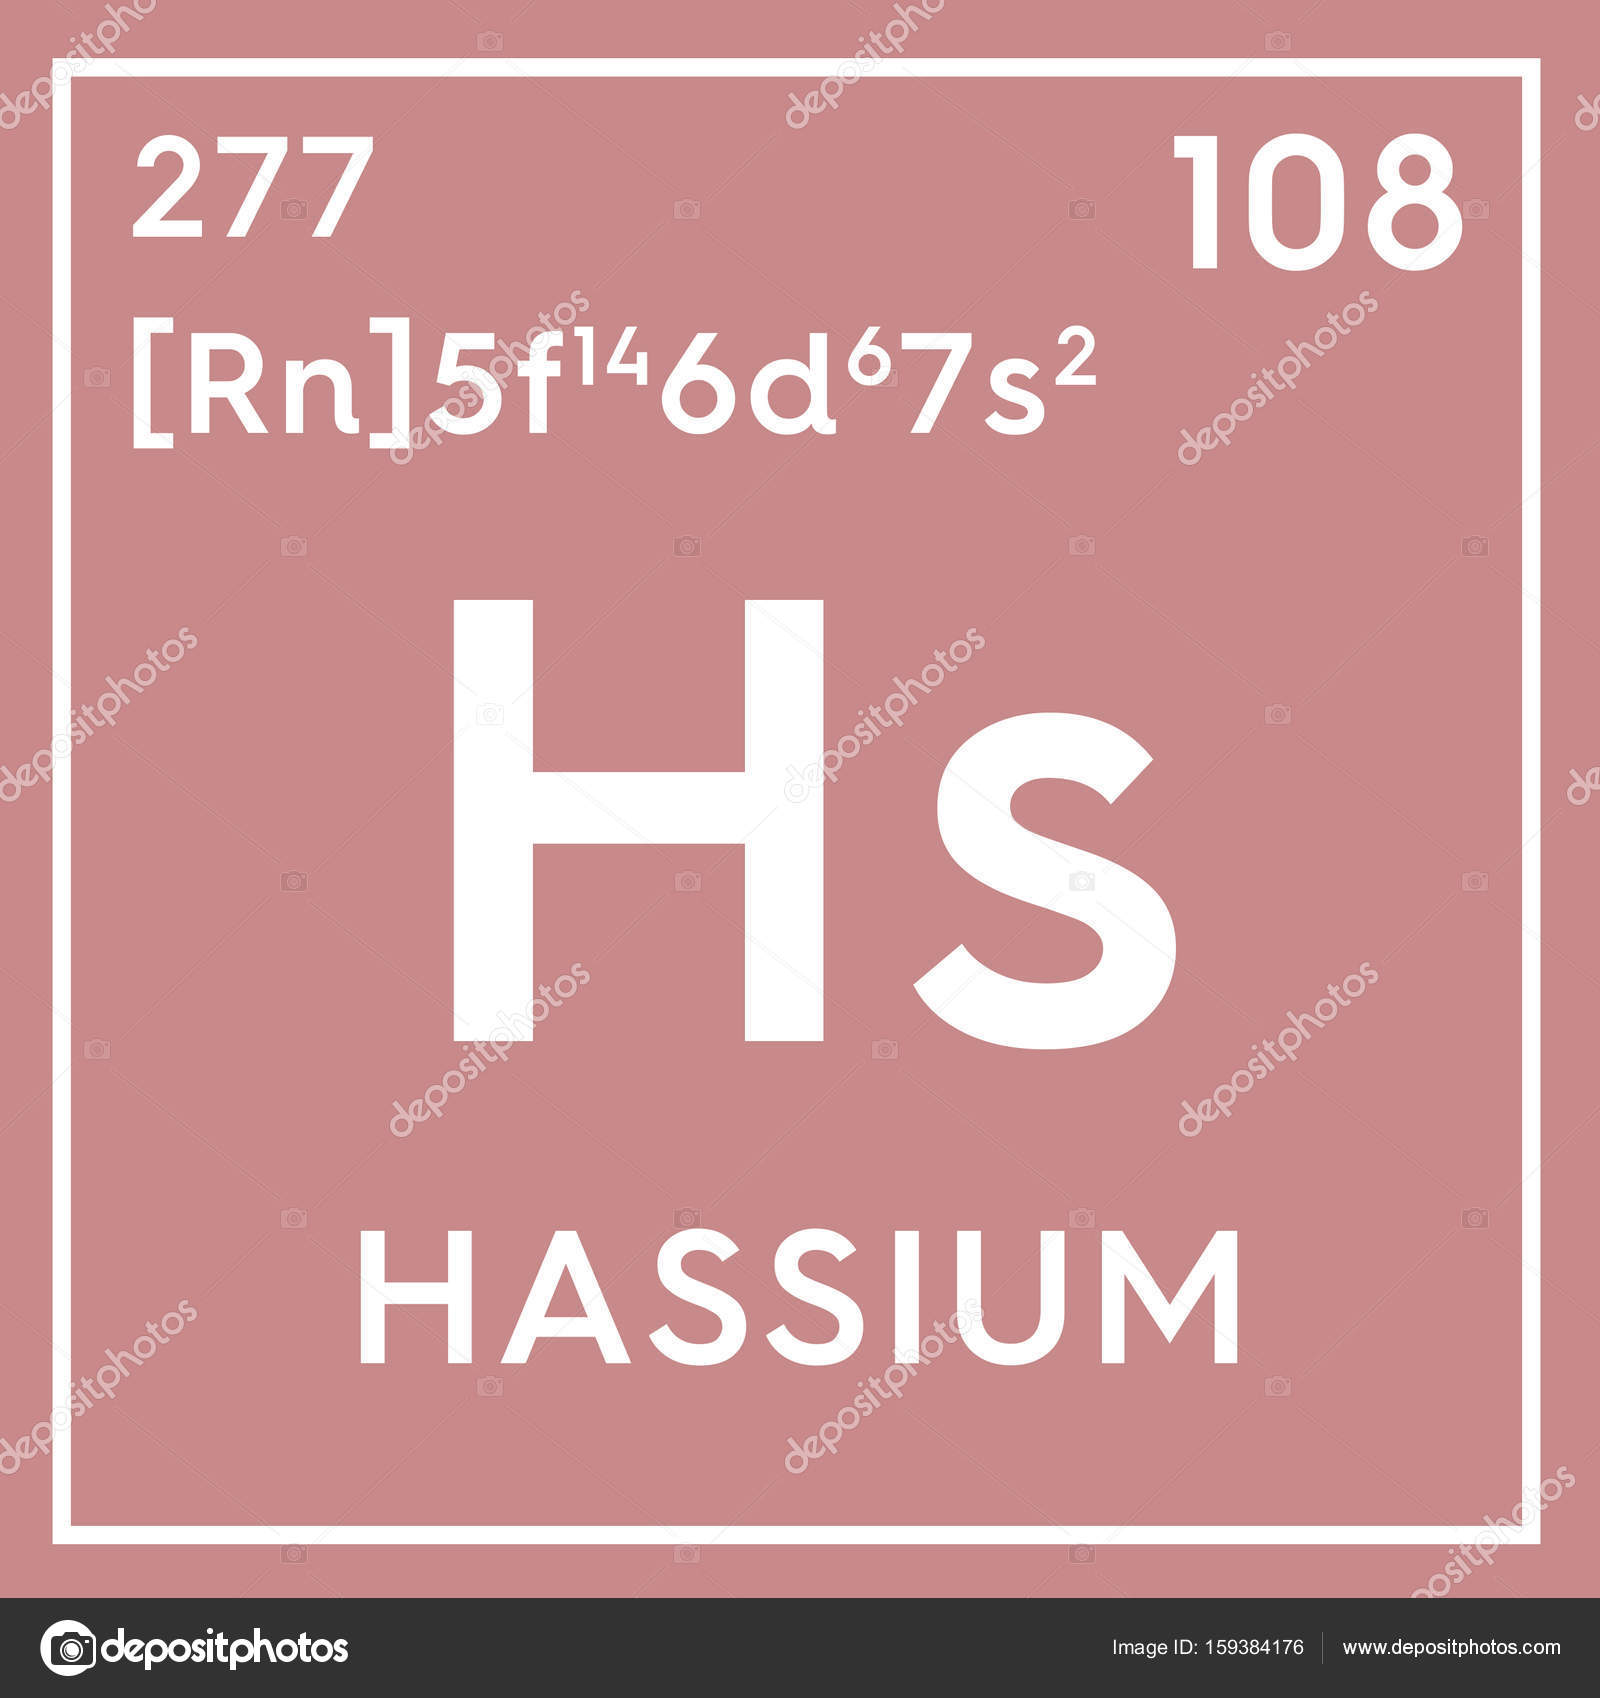 Hassium transition metals chemical element of mendeleevs chemical element of mendeleevs periodic table hassium in square cube creative concept photo by sanches812 gamestrikefo Images